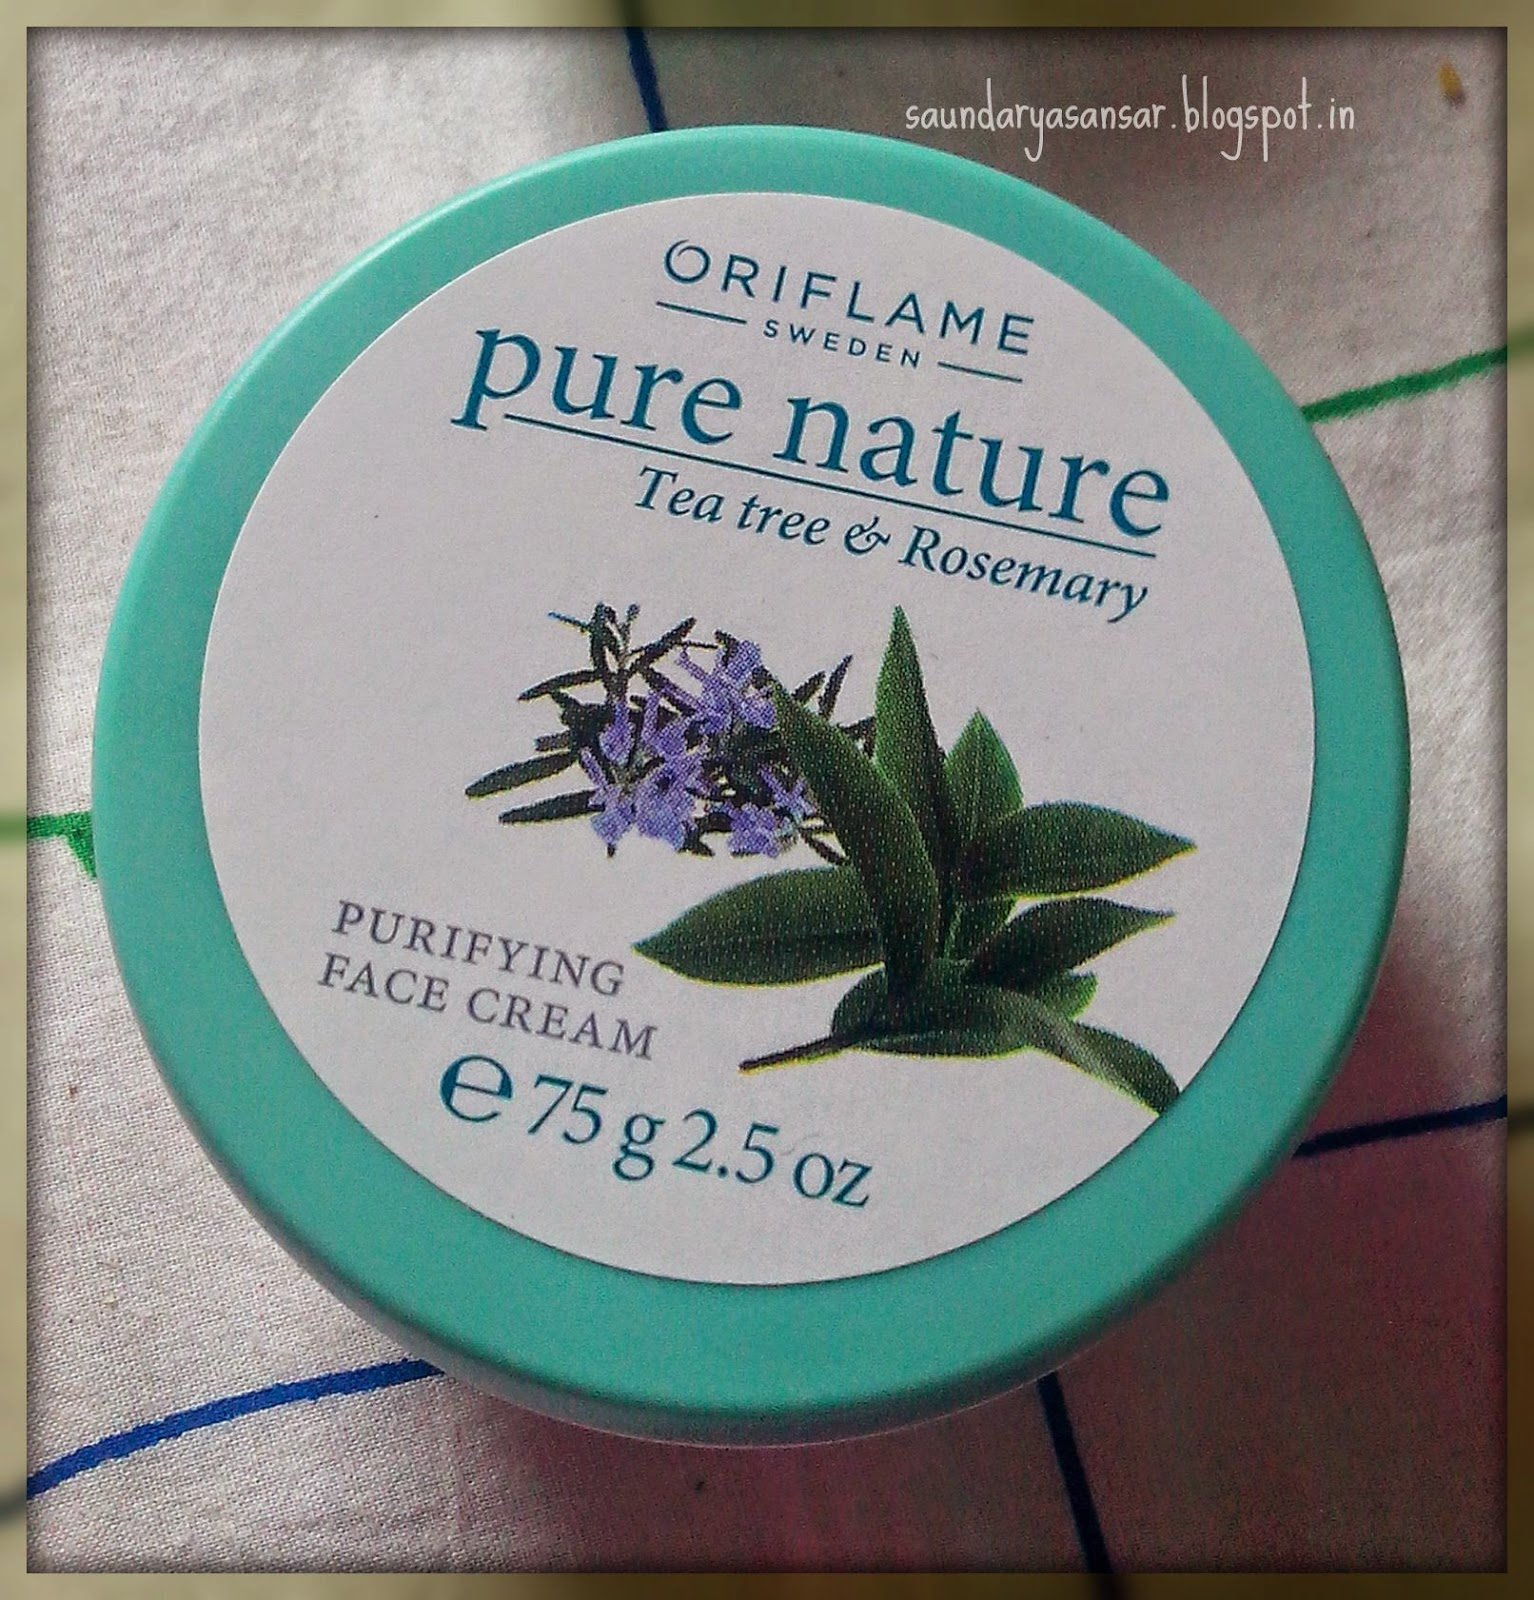 ORIFLAME-PURE-NATURE-Tea-Tree-and-Rosemary-Purifying-Face-Cream-Review